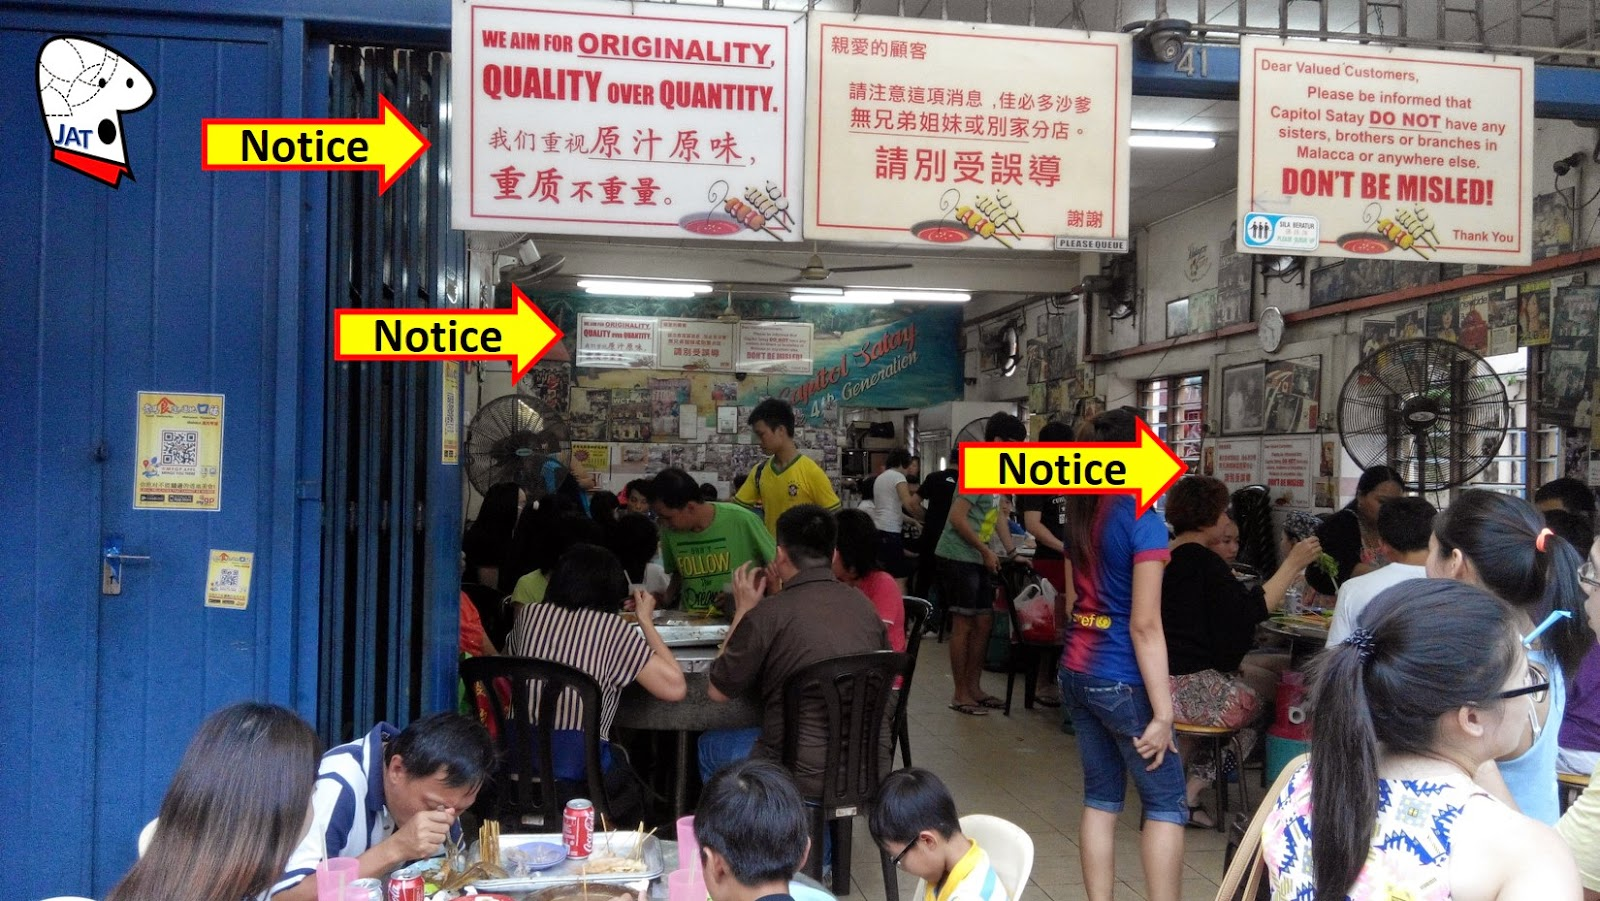 Restoran Capitol Satay - disclaimers.